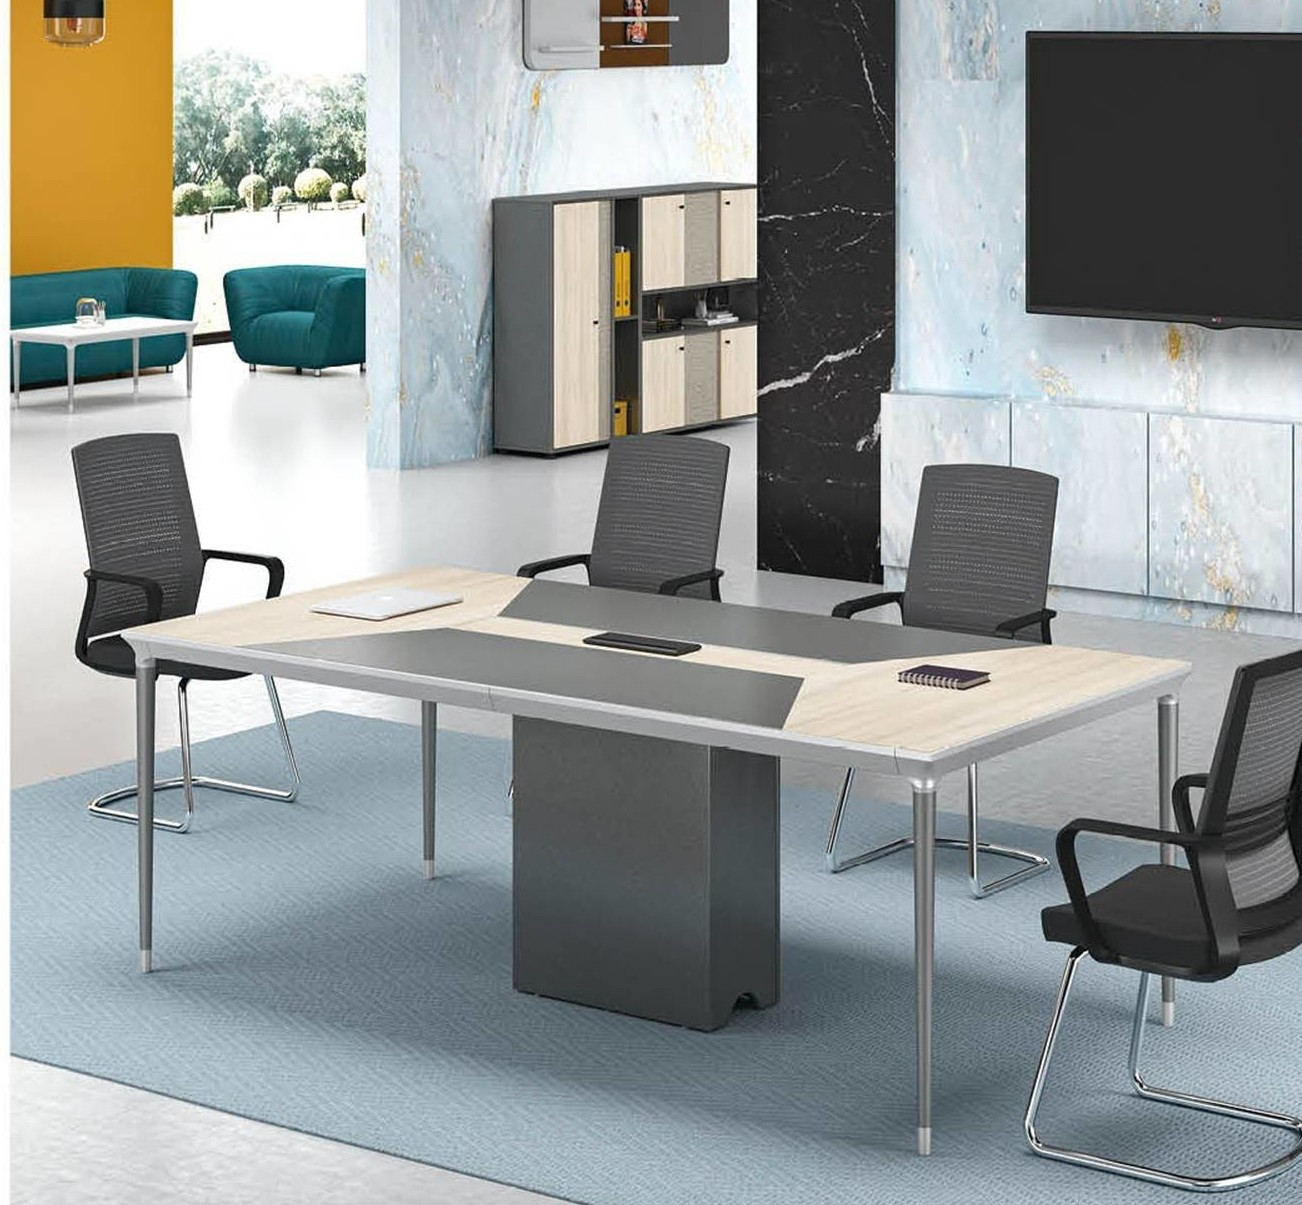 Modern Design 6 Seater Conference table,made of MFC melamine board (RS-32C2412)